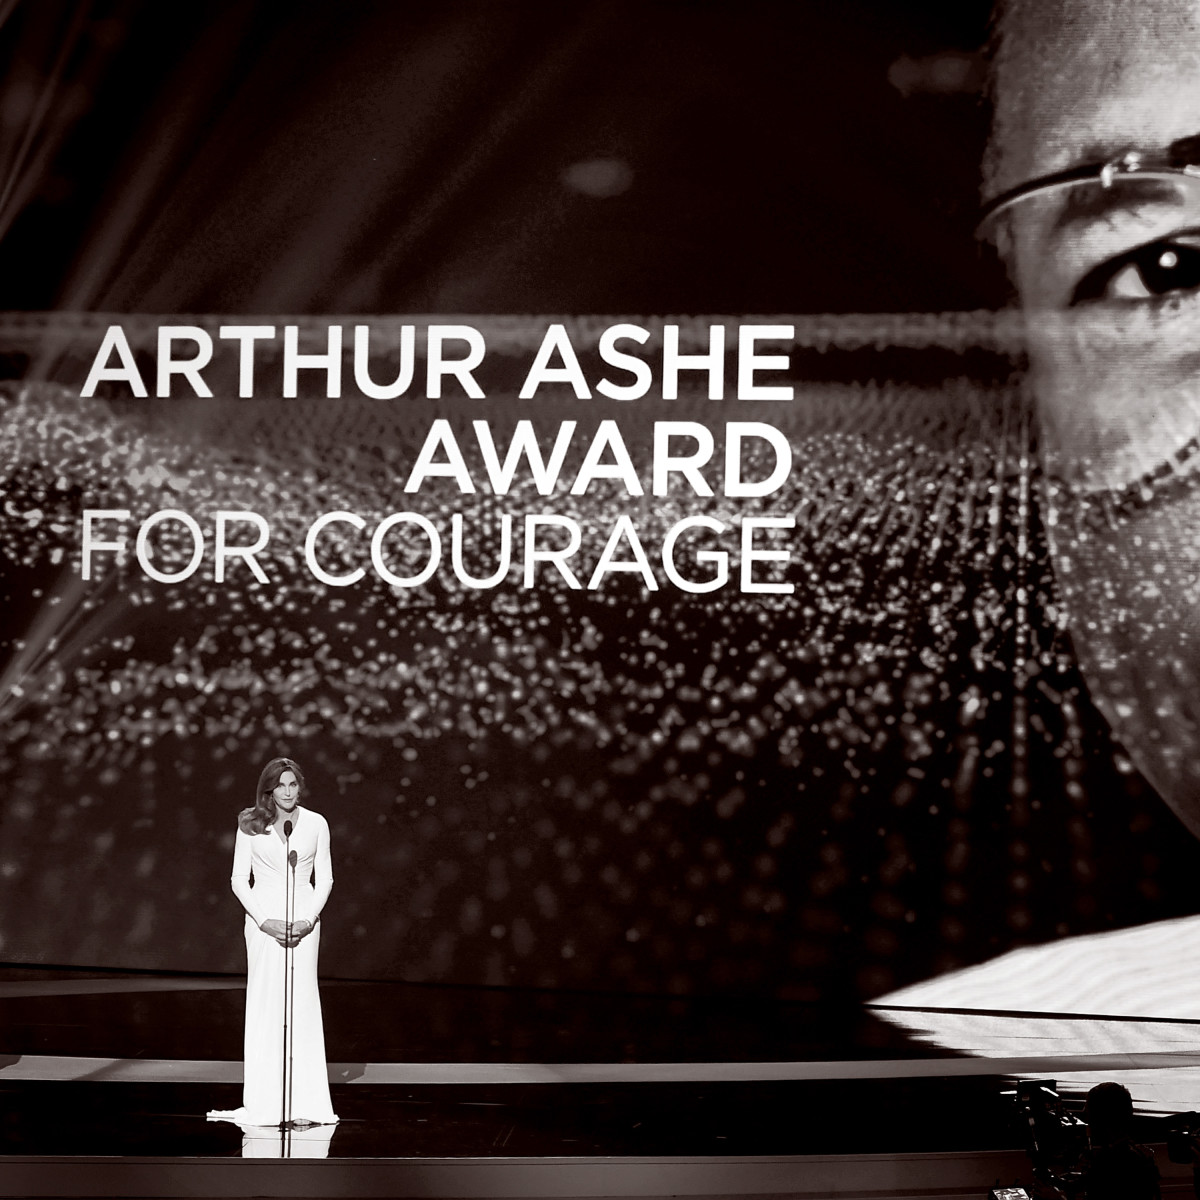 Caitlyn Jenner accepts the Arthur Ashe Award For Courage onstage during the 2015 ESPYS at Microsoft Theater on July 15, 2015, in Los Angeles, California. (Photo: Kevin Winter/Getty Images)